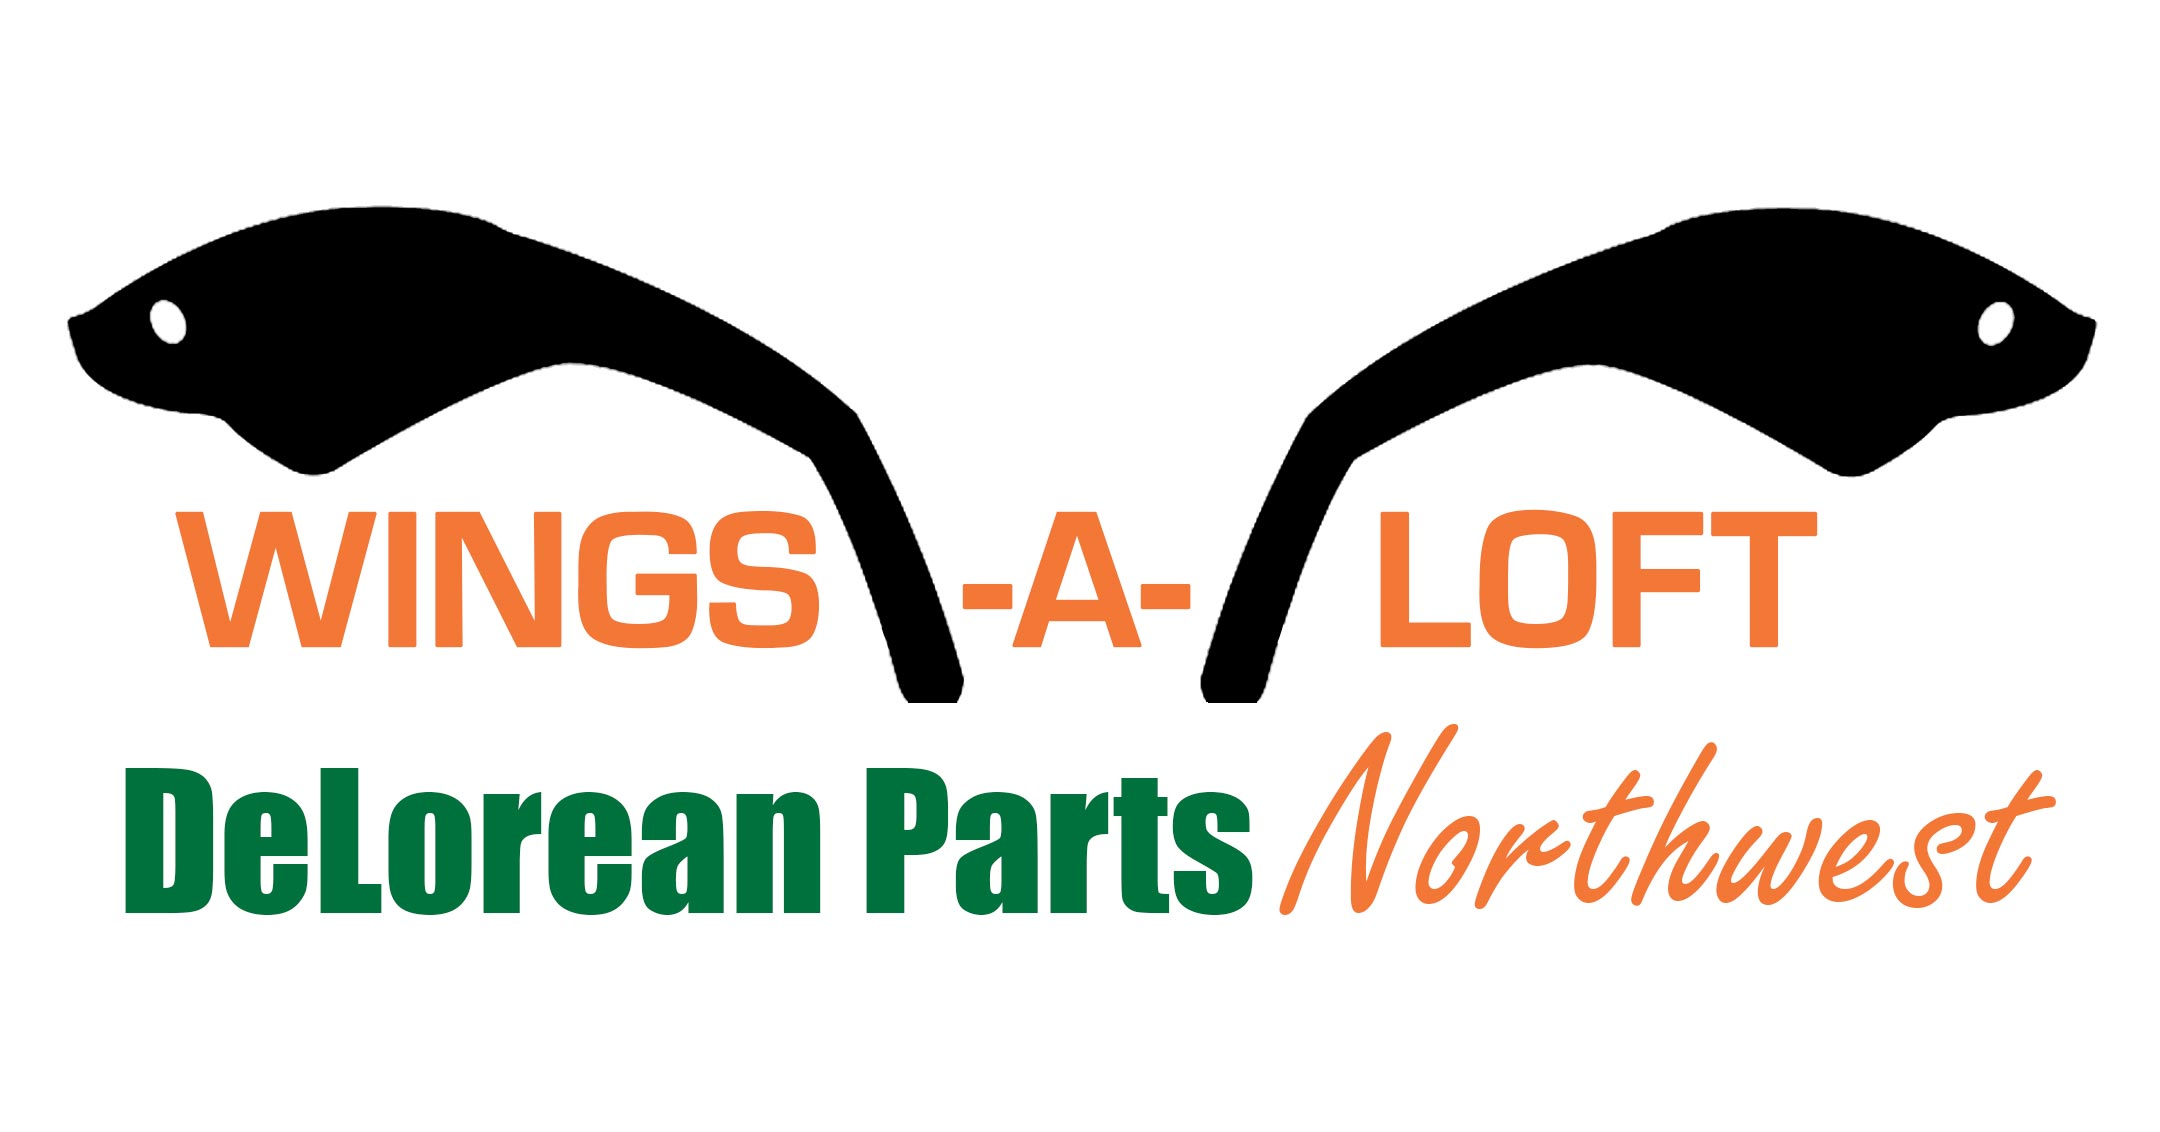 Wings-A-Loft | DeLorean Parts Northwest